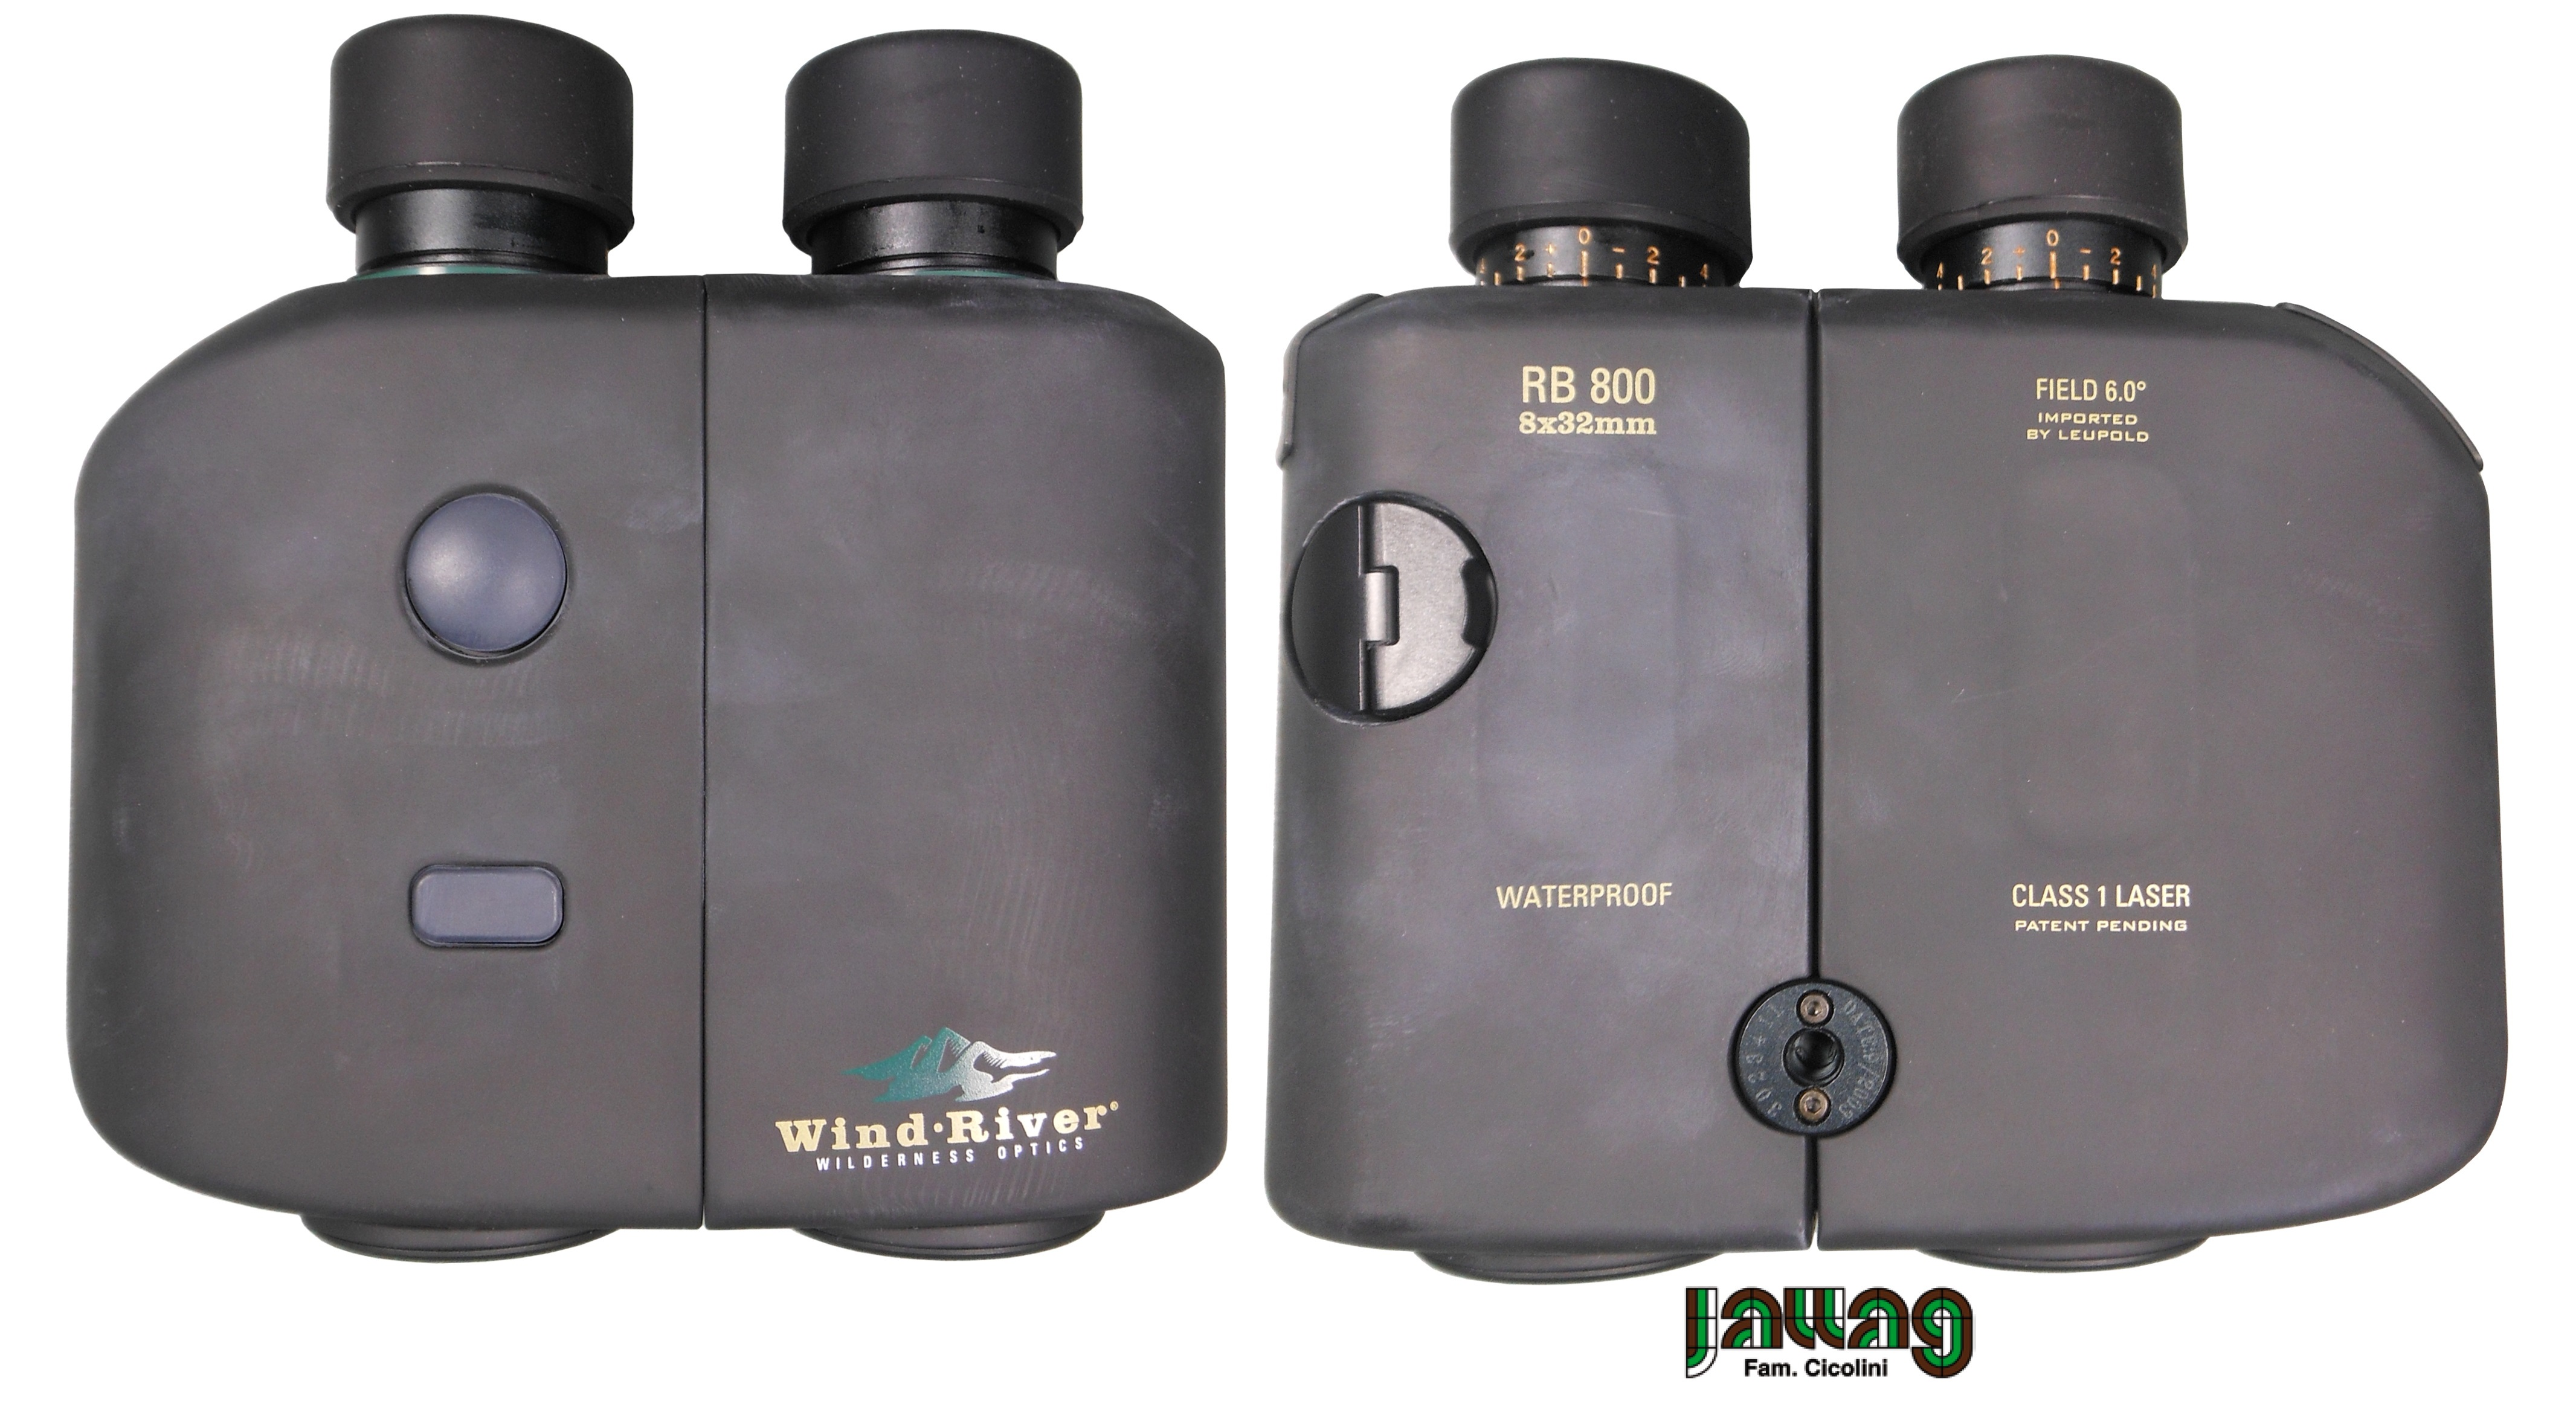 Wind River-RB800 8X32